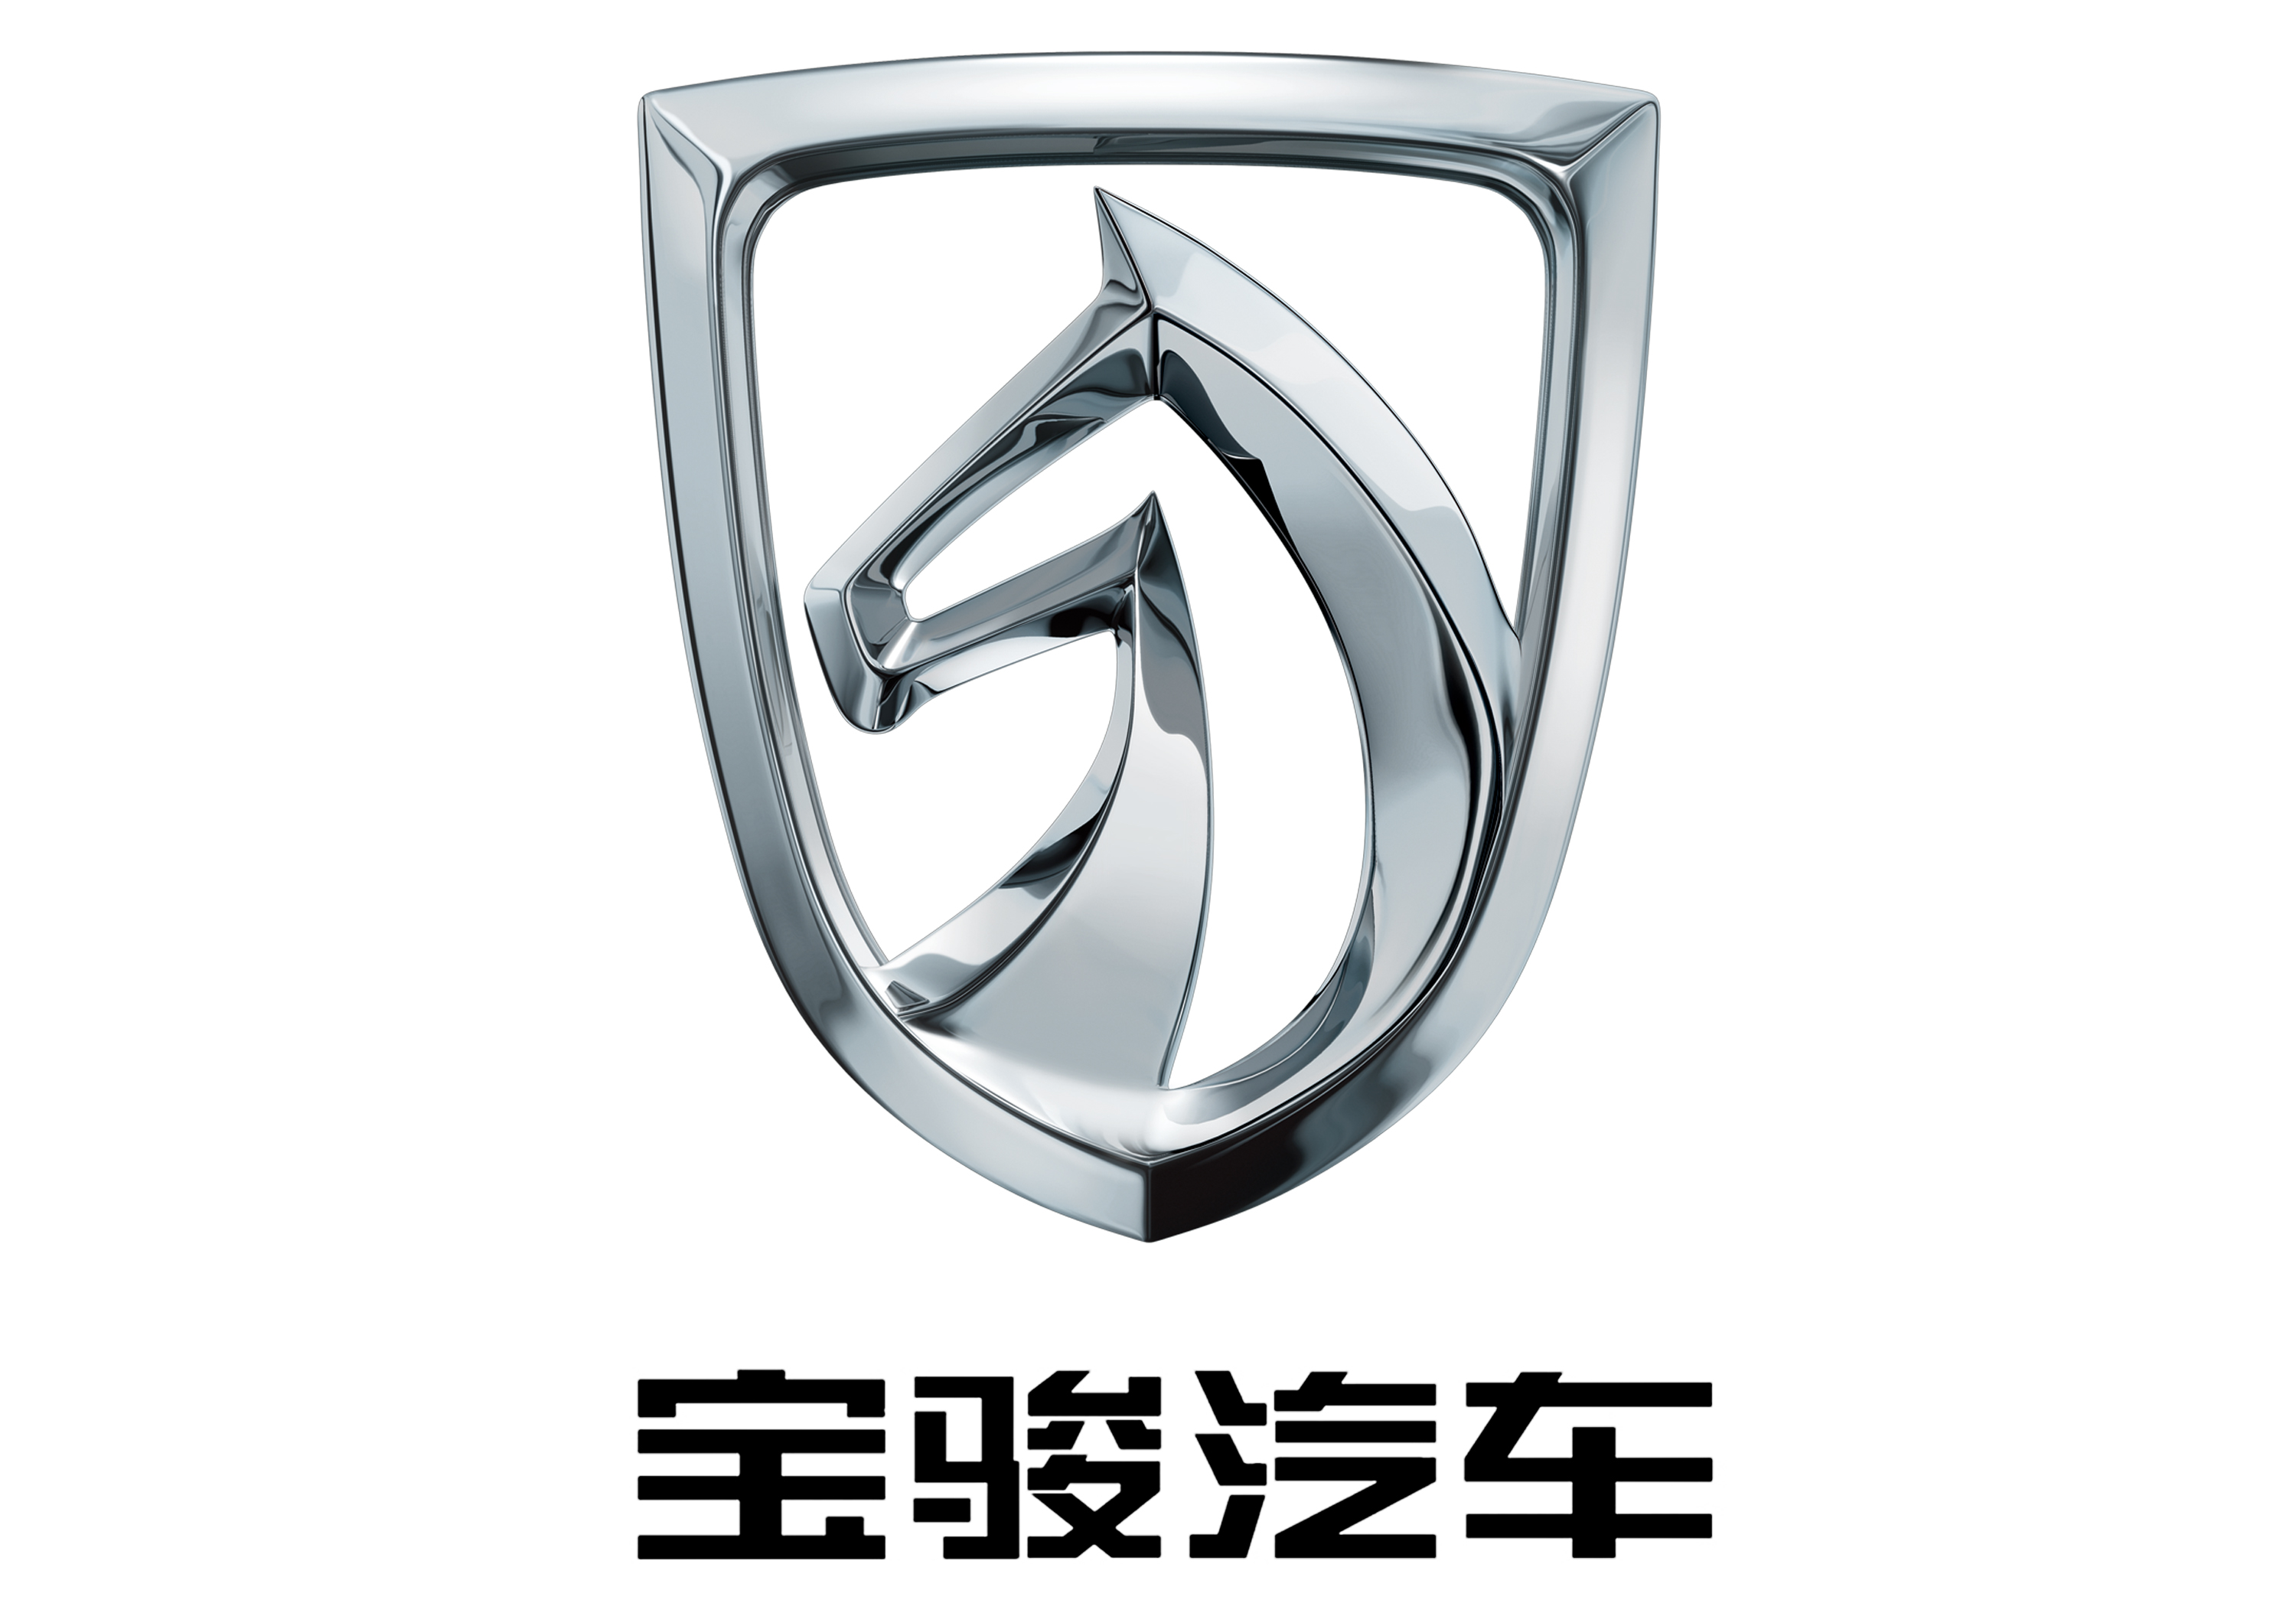 Car Brands And Logos >> Chinese Car Brands | World Cars Brands